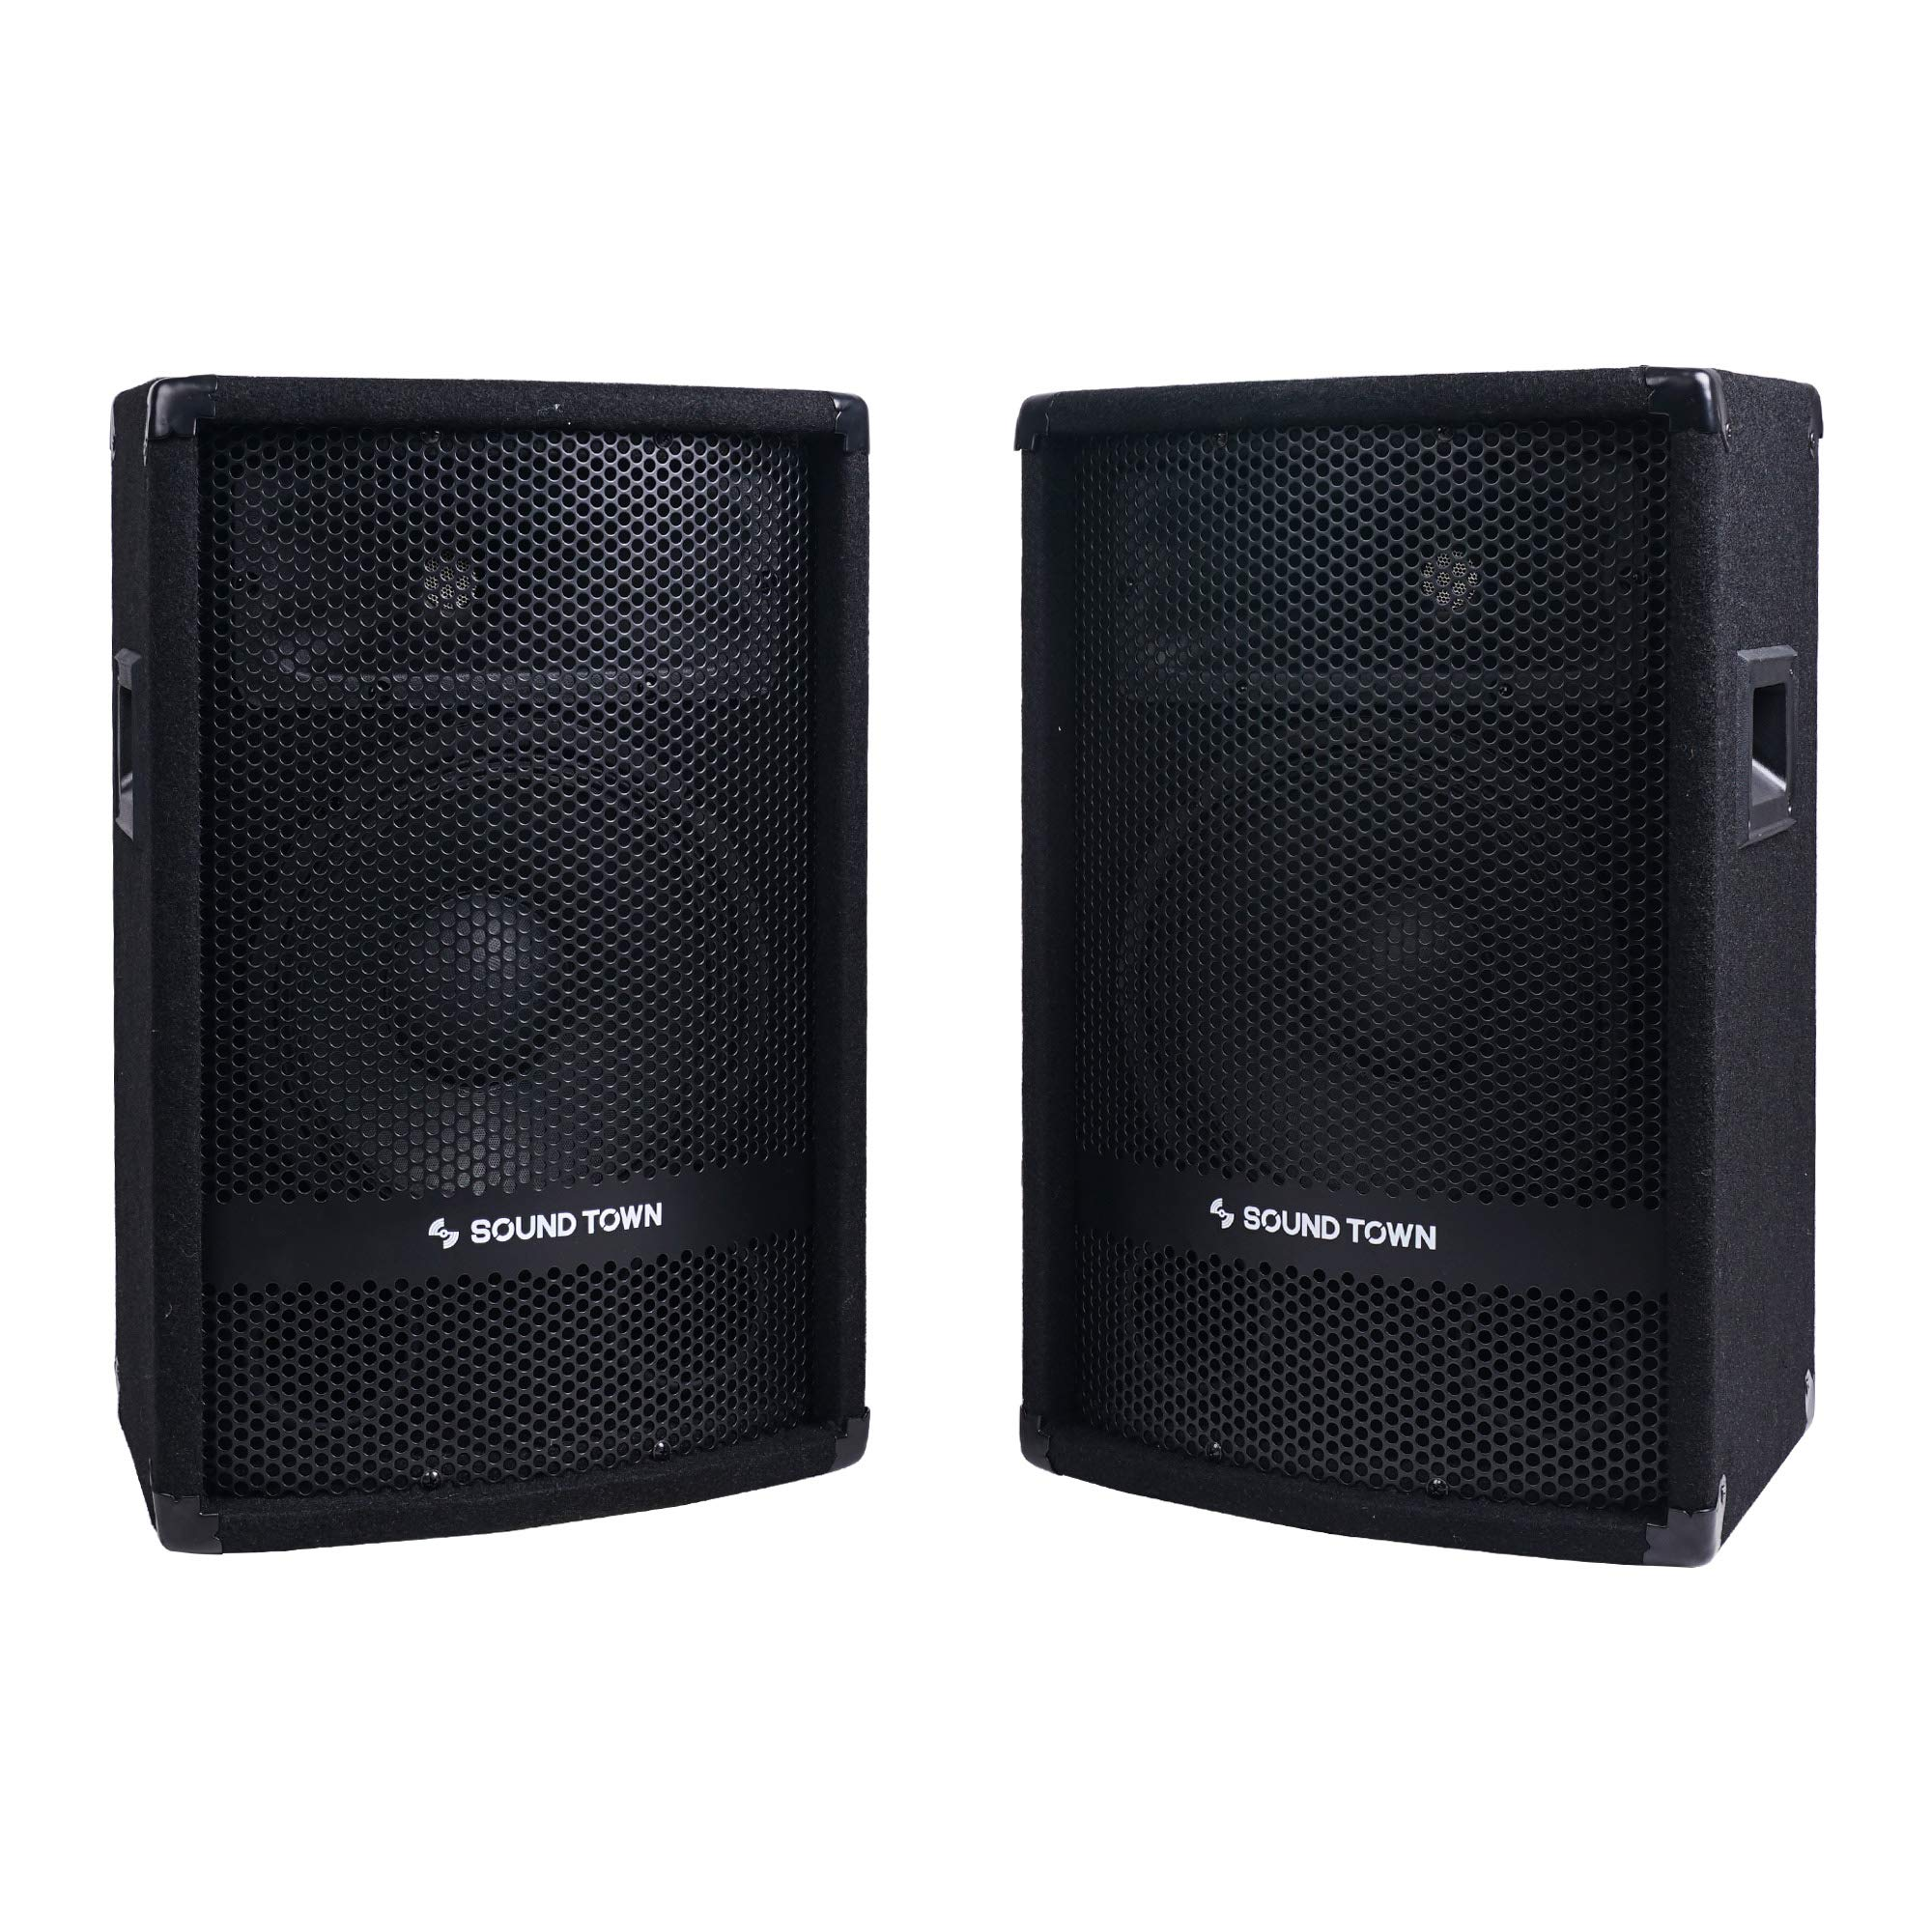 Sound Town 2-Pack 10'' 400 Watts Passive DJ/PA Speakers with Compression Drivers for Live Sound, Karaoke, Bar, Church (METIS-110-PAIR) by Sound Town